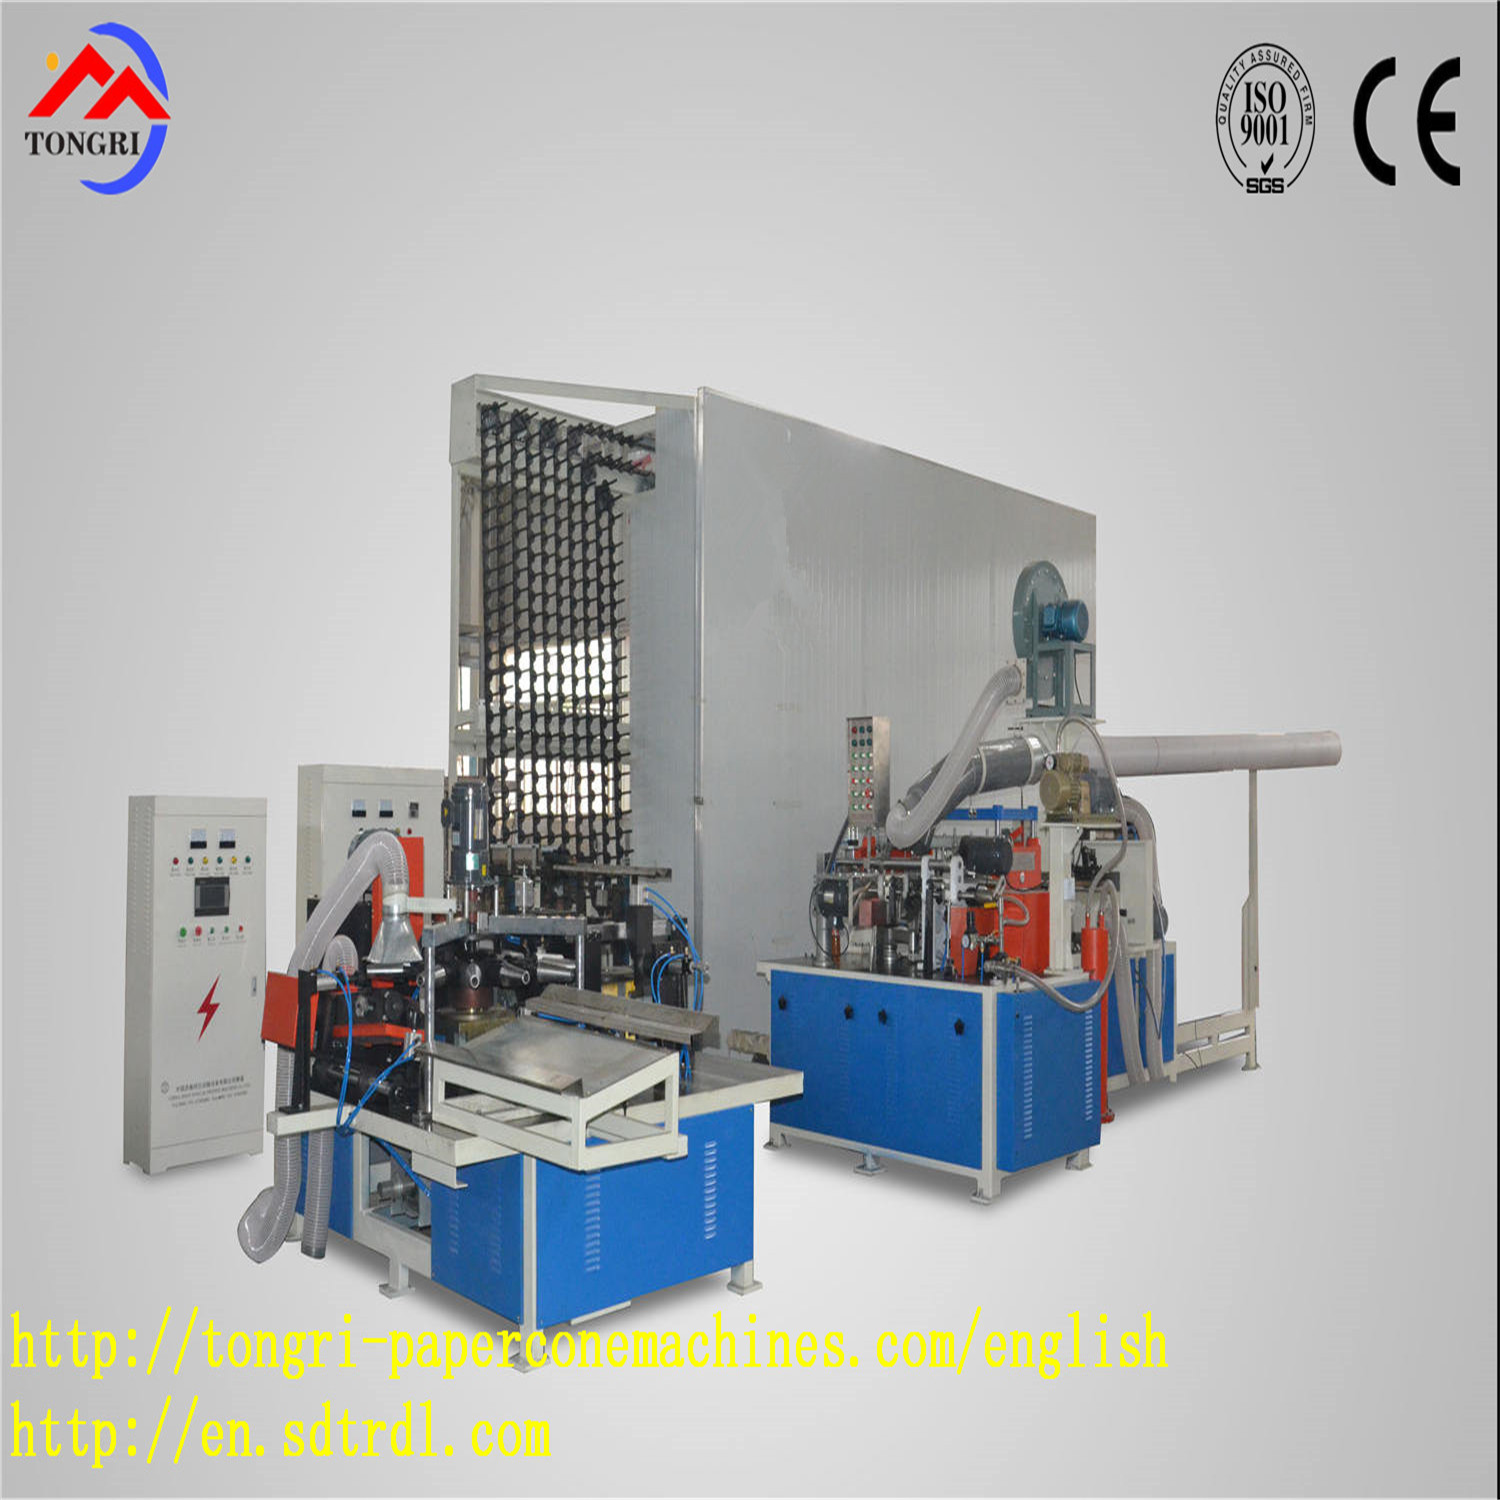 TRZ-2012 full automatic conical paper tube production line